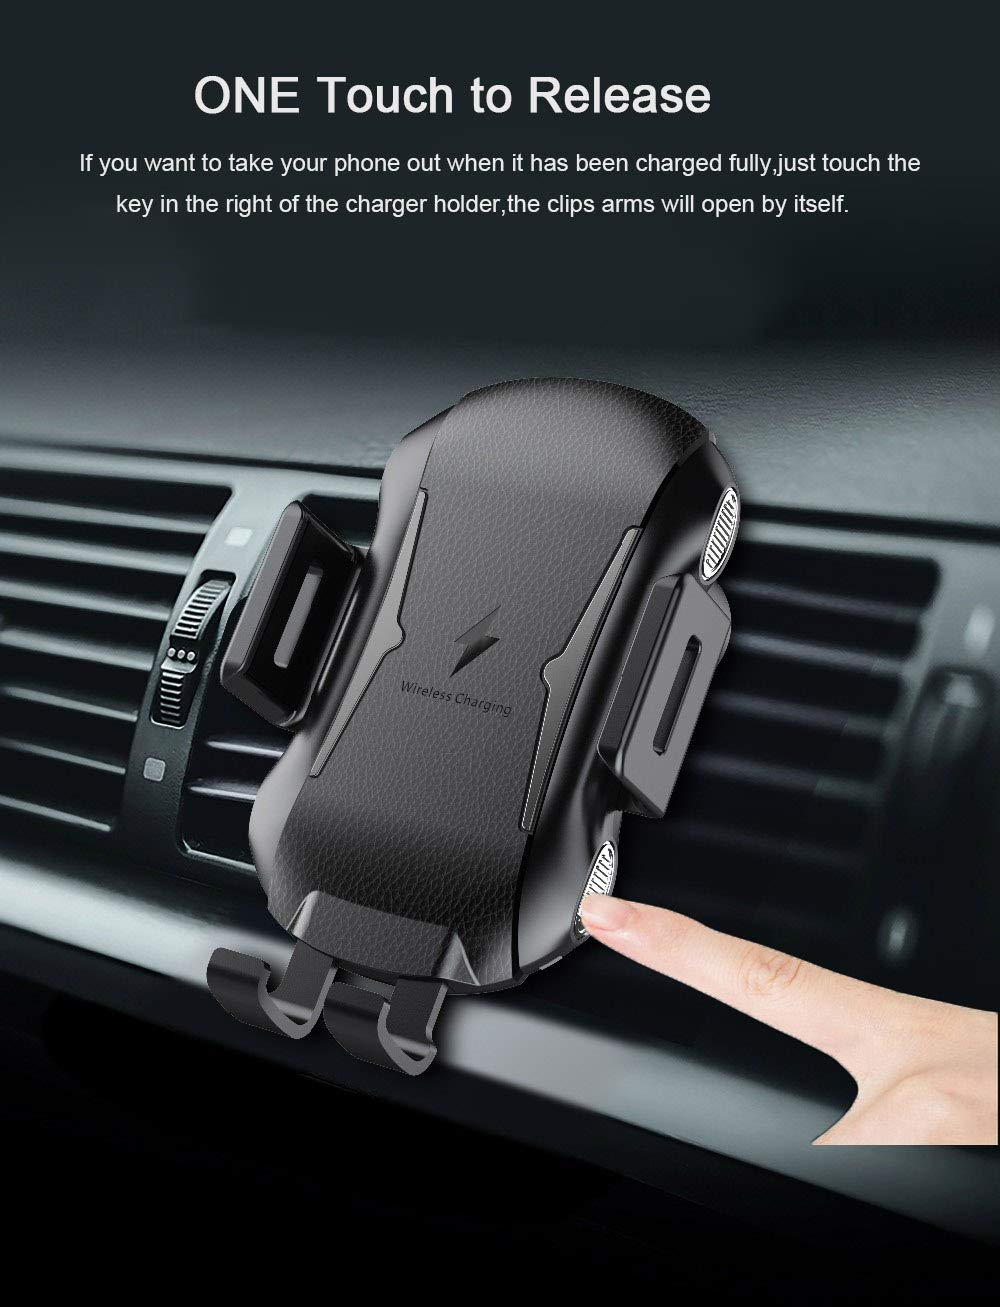 AKXOMY Automatic Clamping 10W//7.5W Qi Enabled Car Charger Holder on Air Vent Compatible with Samsung Galaxy S9 S9 Plus S8 S7//S7 Edge Note 8 5 /& Standard Charge for iPhone X Wireless Car Charger